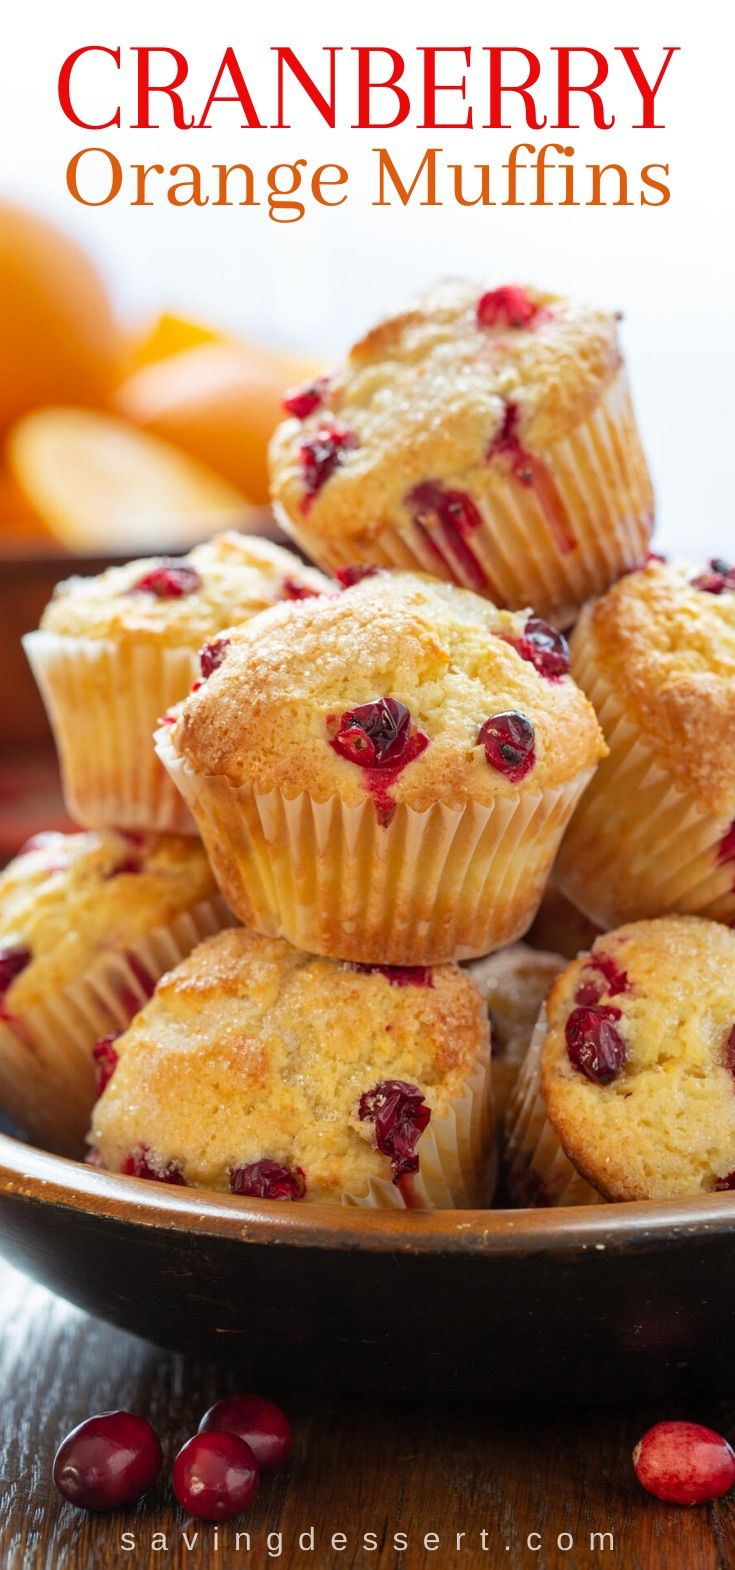 Cranberry Orange Muffins Recipe Cranberry Orange Muffins Homemade Muffins Cranberry Orange Muffin Recipe